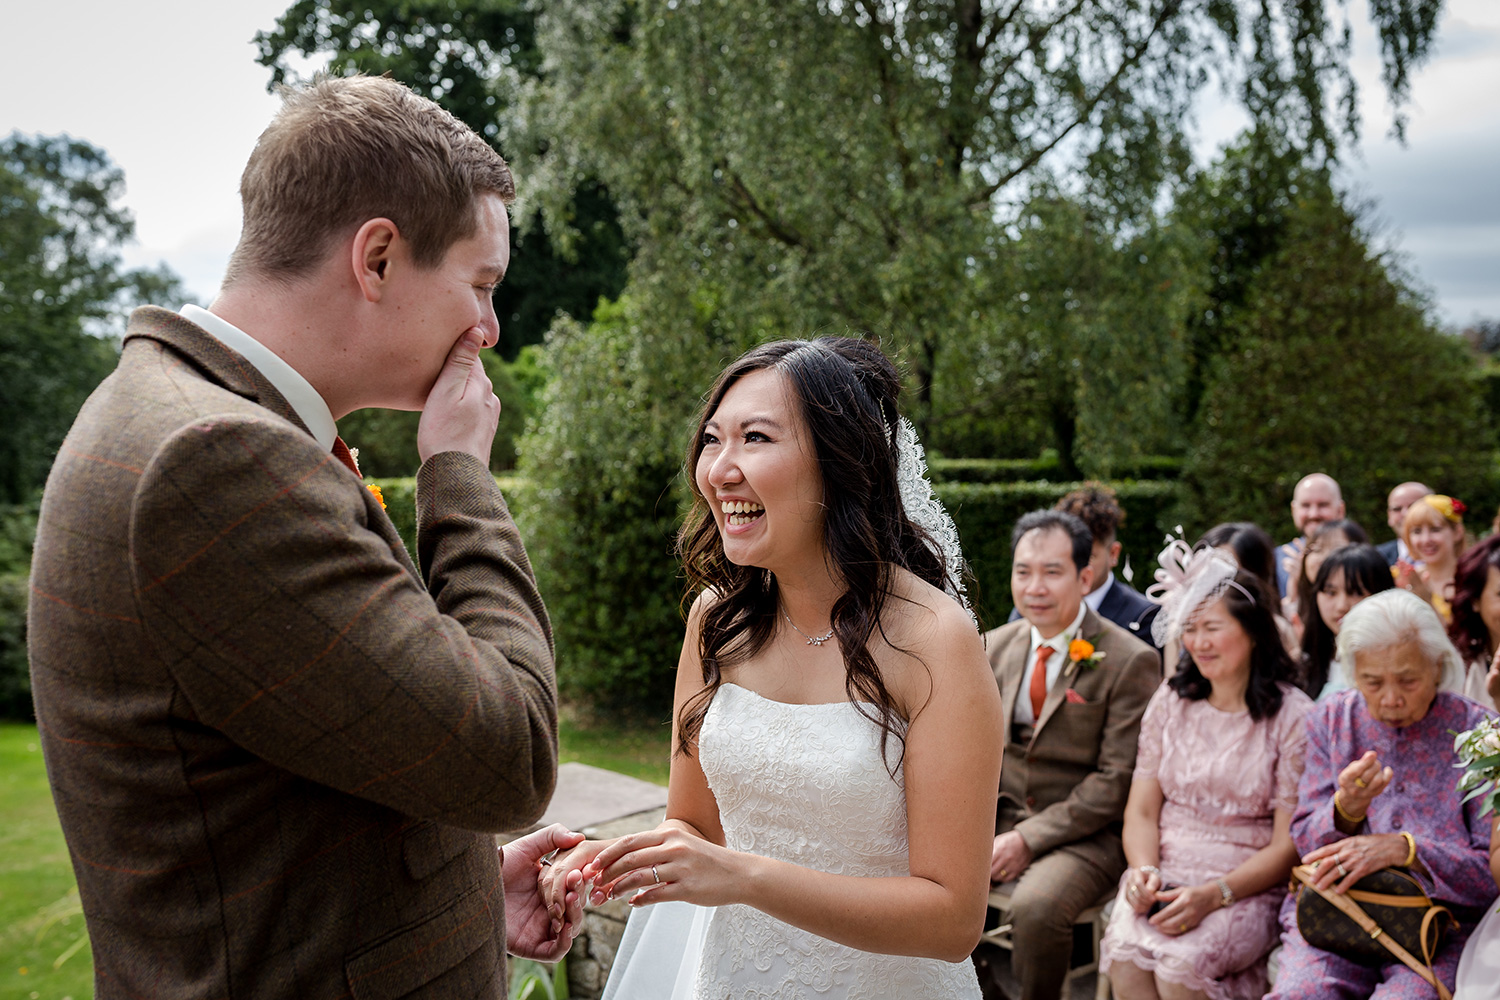 Outdoor ceremony during a Cheshire wedding